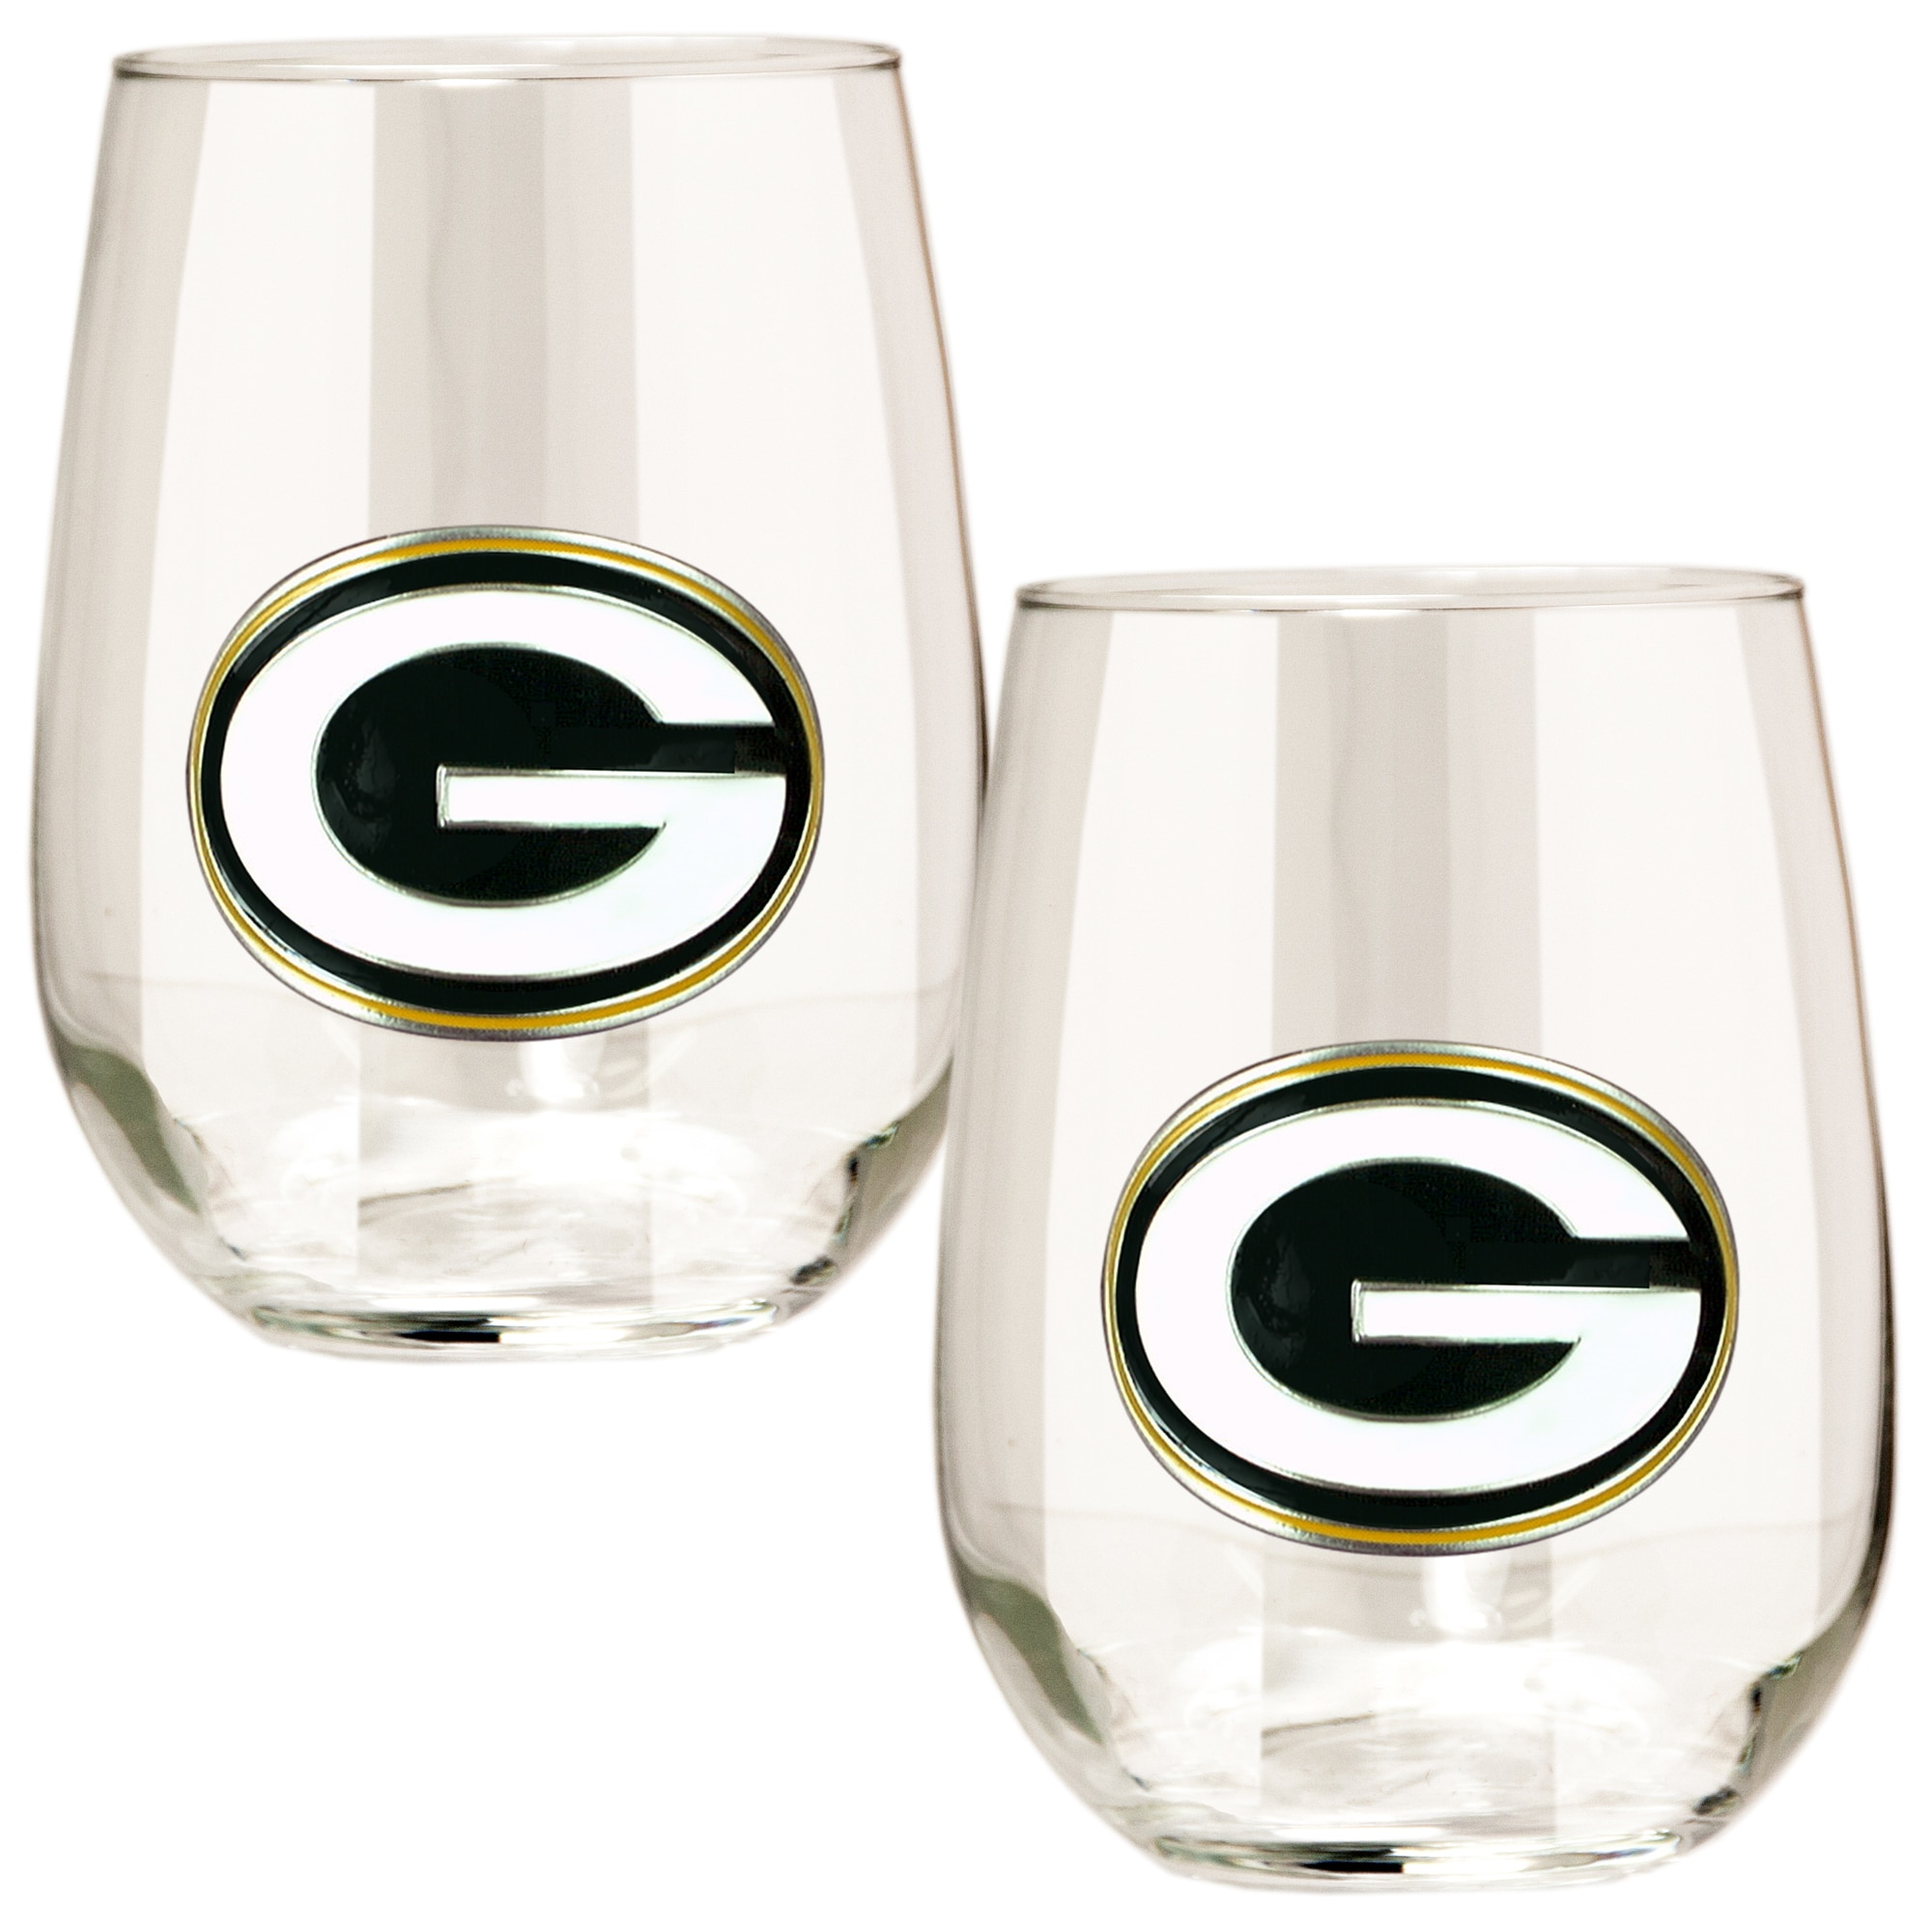 Green Bay Packers 15oz. Stemless Wine Glass Set